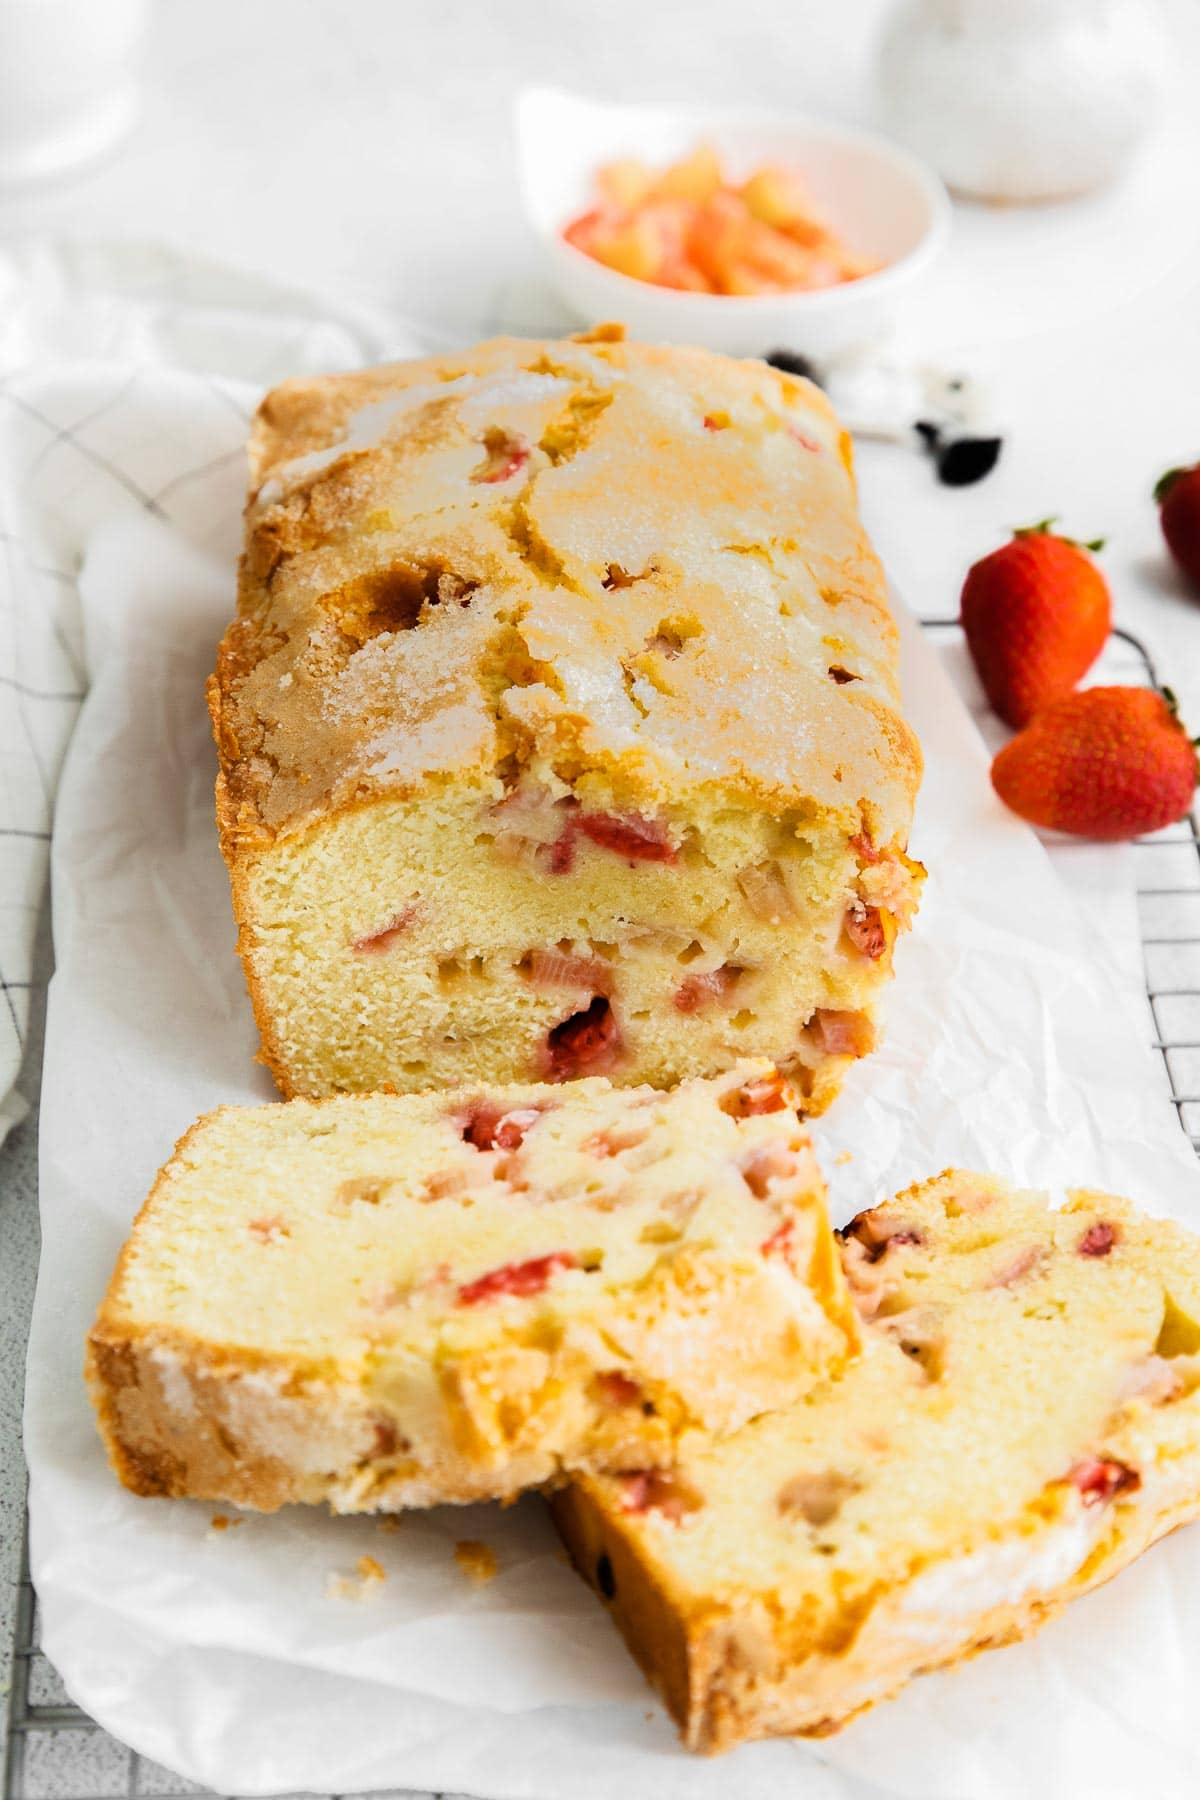 strawberry pound cake on a white parchment paper with two slices cut